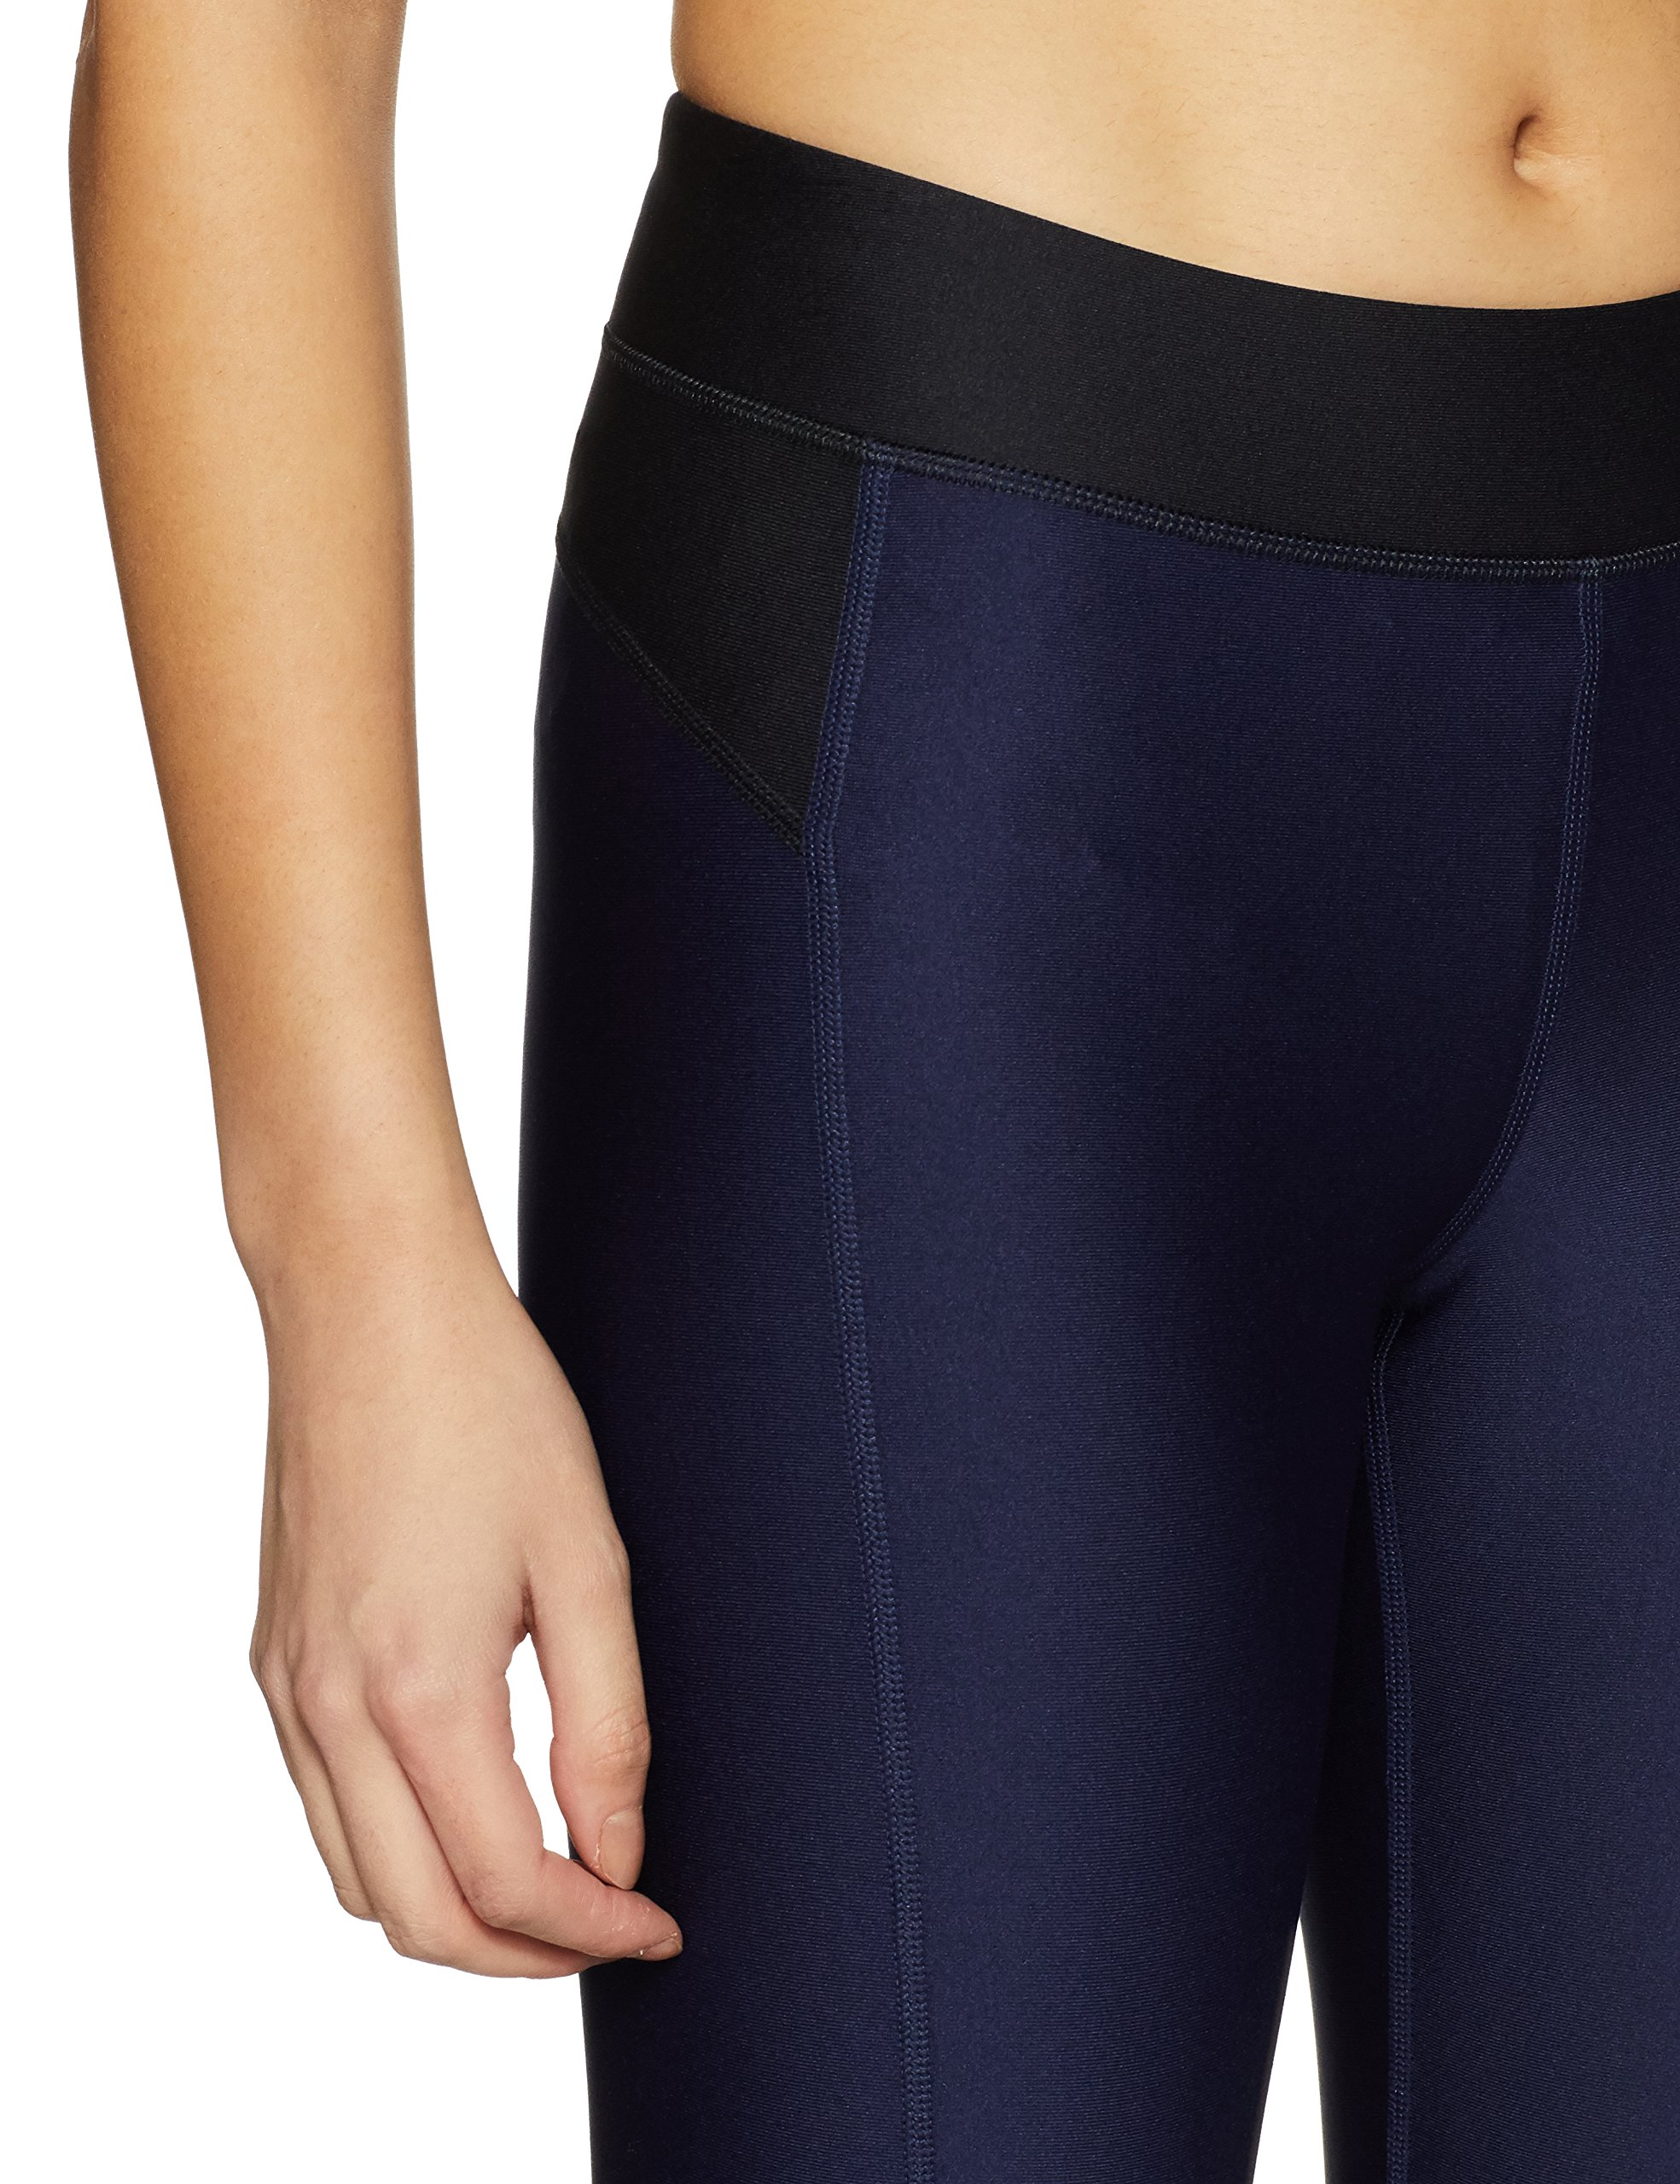 Under Armour Womens Heatgear Armour Leggings, Midnight Navy /Metallic Silver, XX-Large by Under Armour (Image #4)